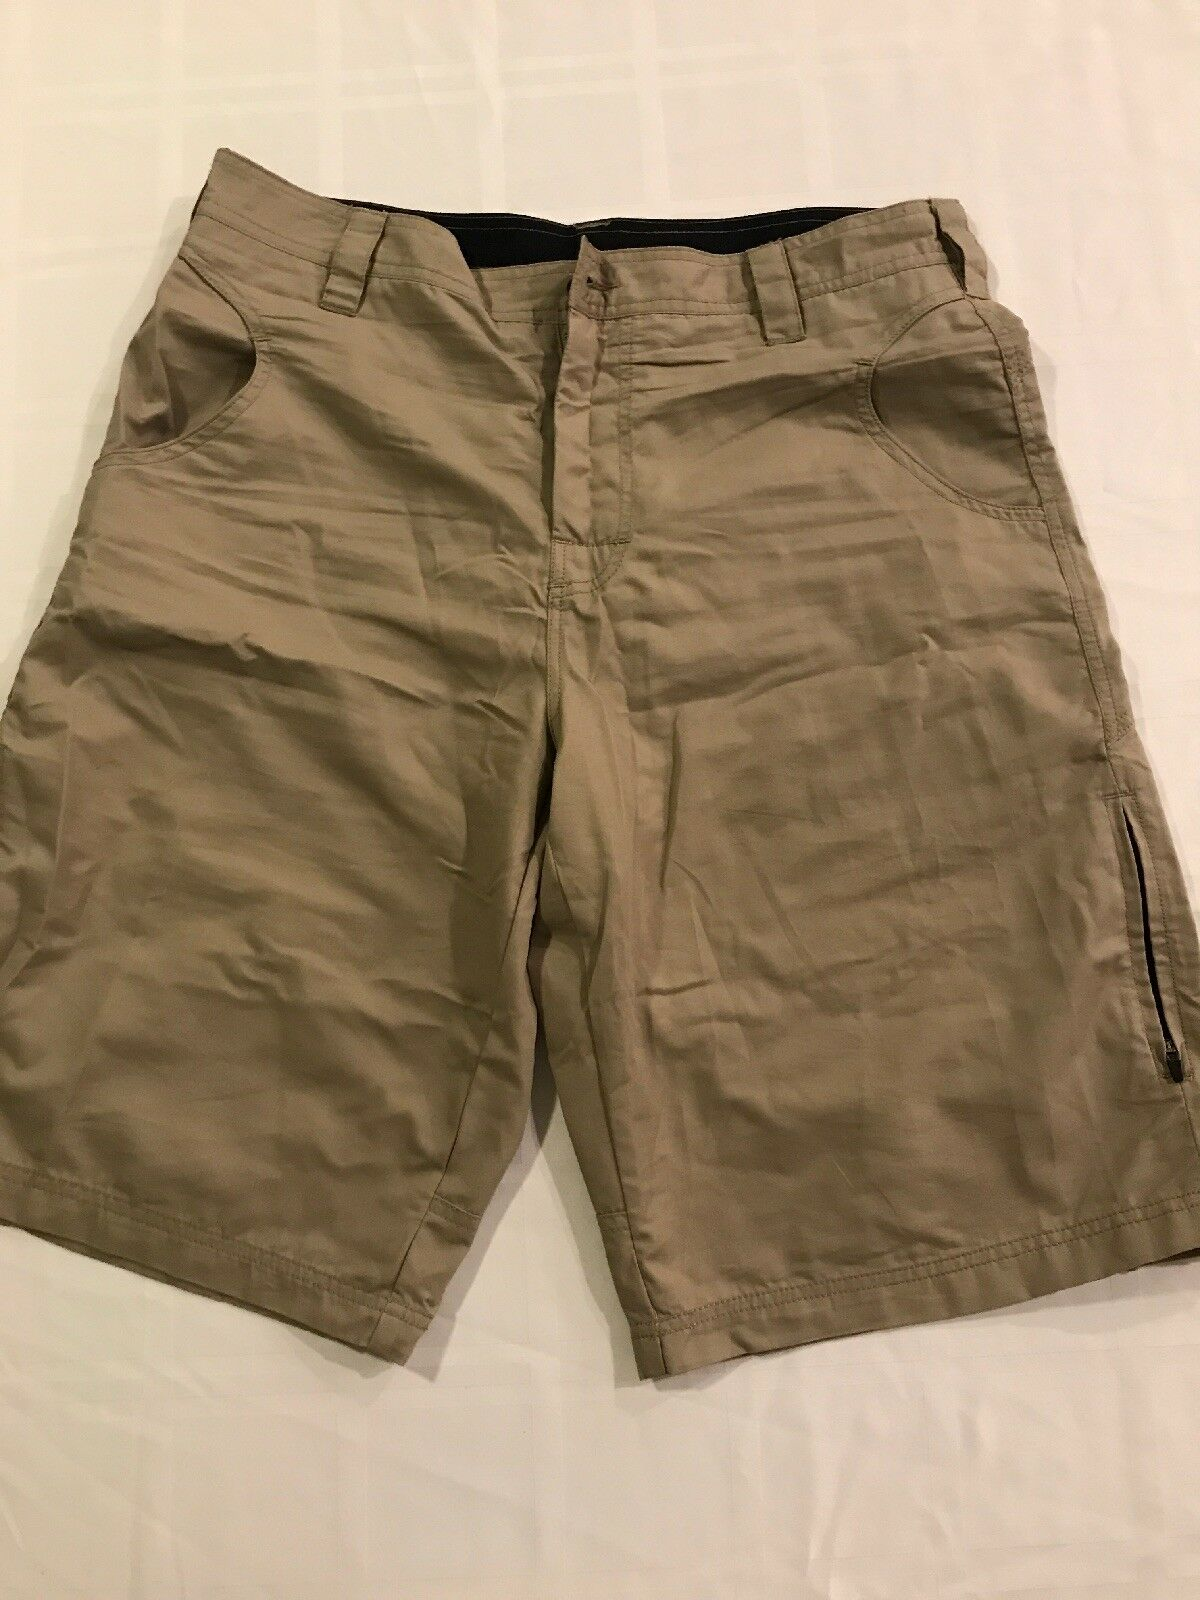 PrAna Mens Lg Outdoor Hiking Shorts Beige Flat Front Cotton Poly Blend TS8